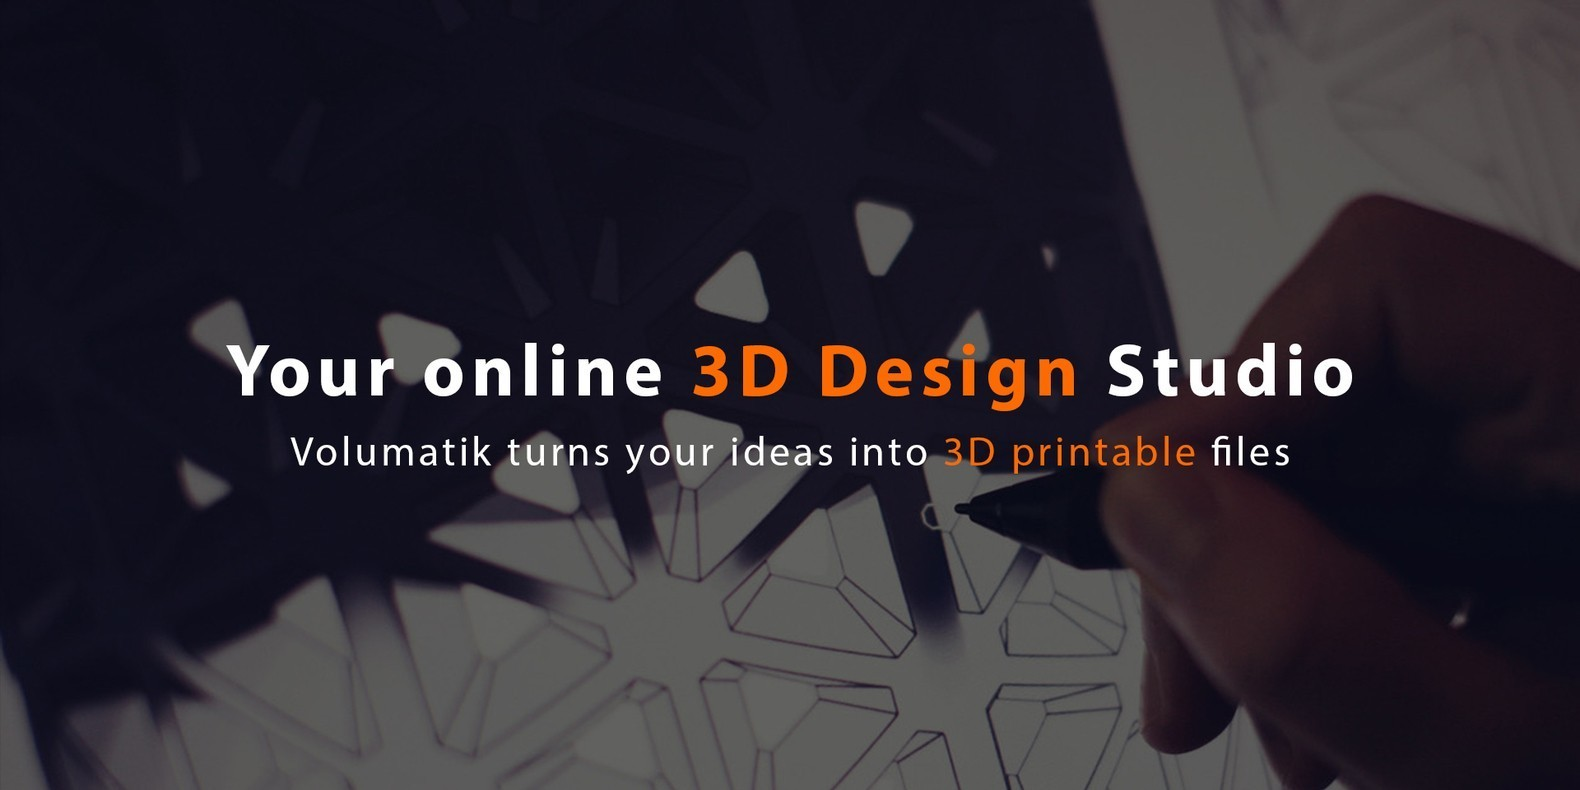 Meet Volumatik • the online 3D design studio which turns your ideas into 3D printable files.